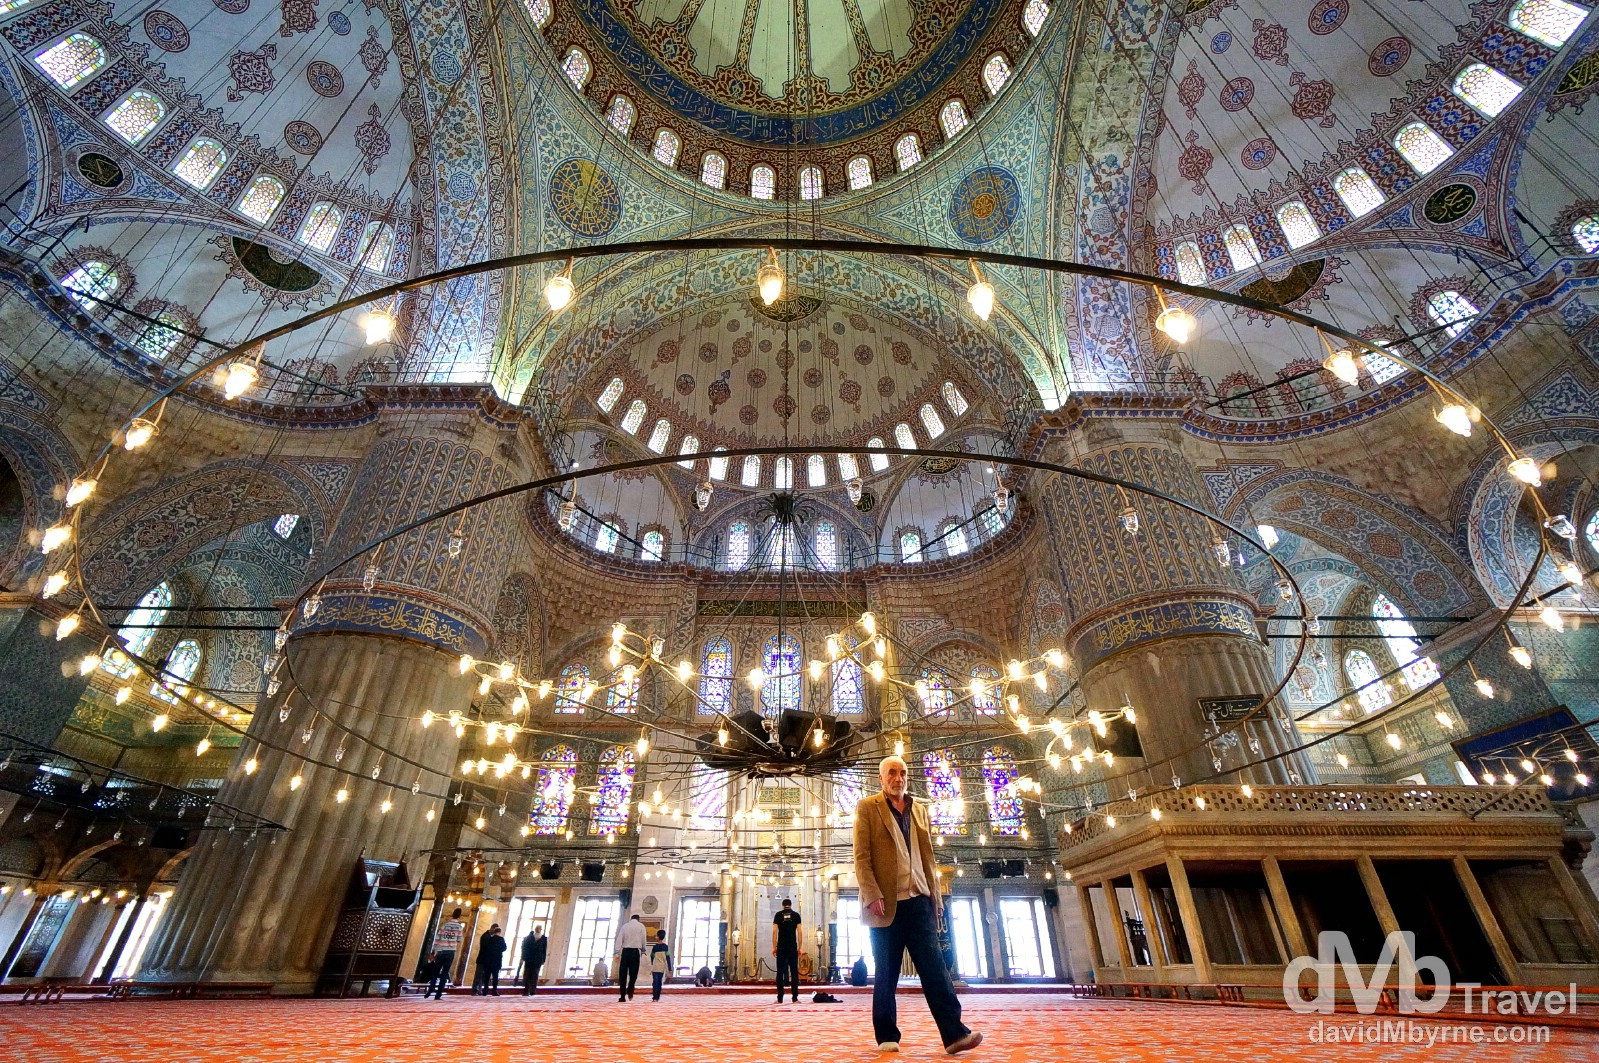 The Sultan Ahmed Mosque, aka The Blue Mosque, Istanbul, Turkey. April 10th, 2014.